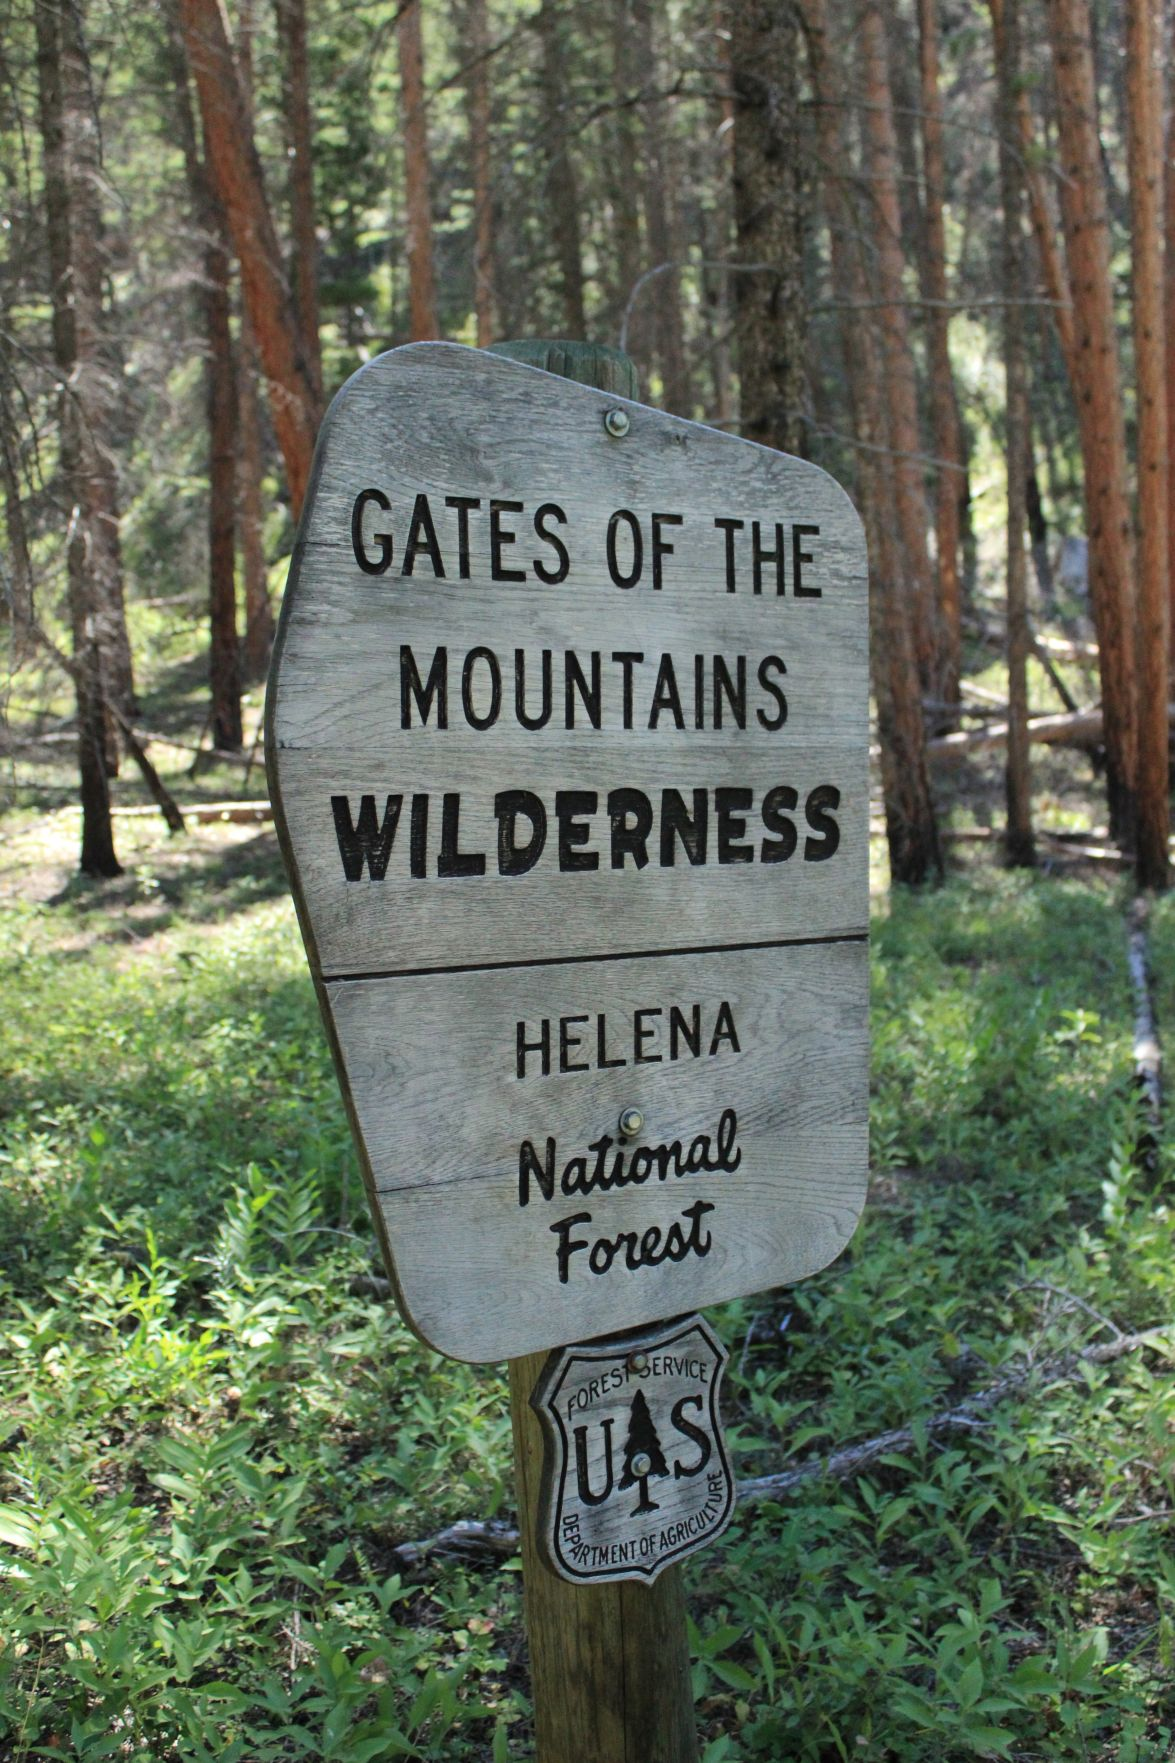 Gates of the Mountains Wilderness